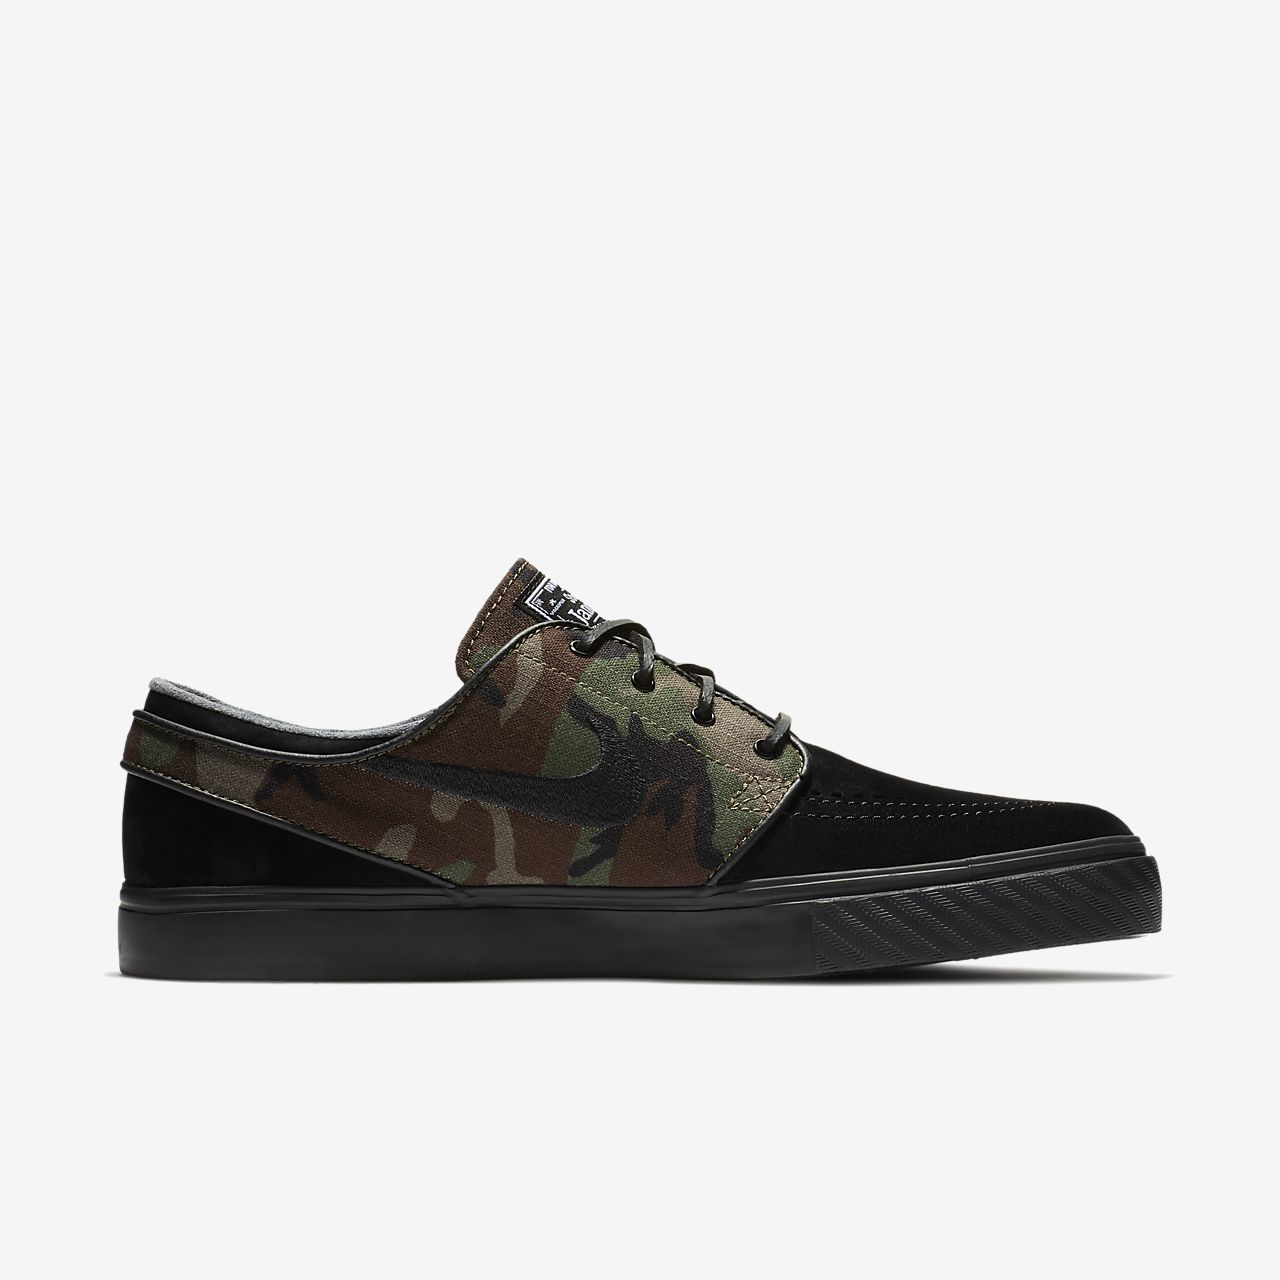 Nike SB Zoom Stefan Janoski Men's Skateboarding Shoes Brown/Black fT1316L